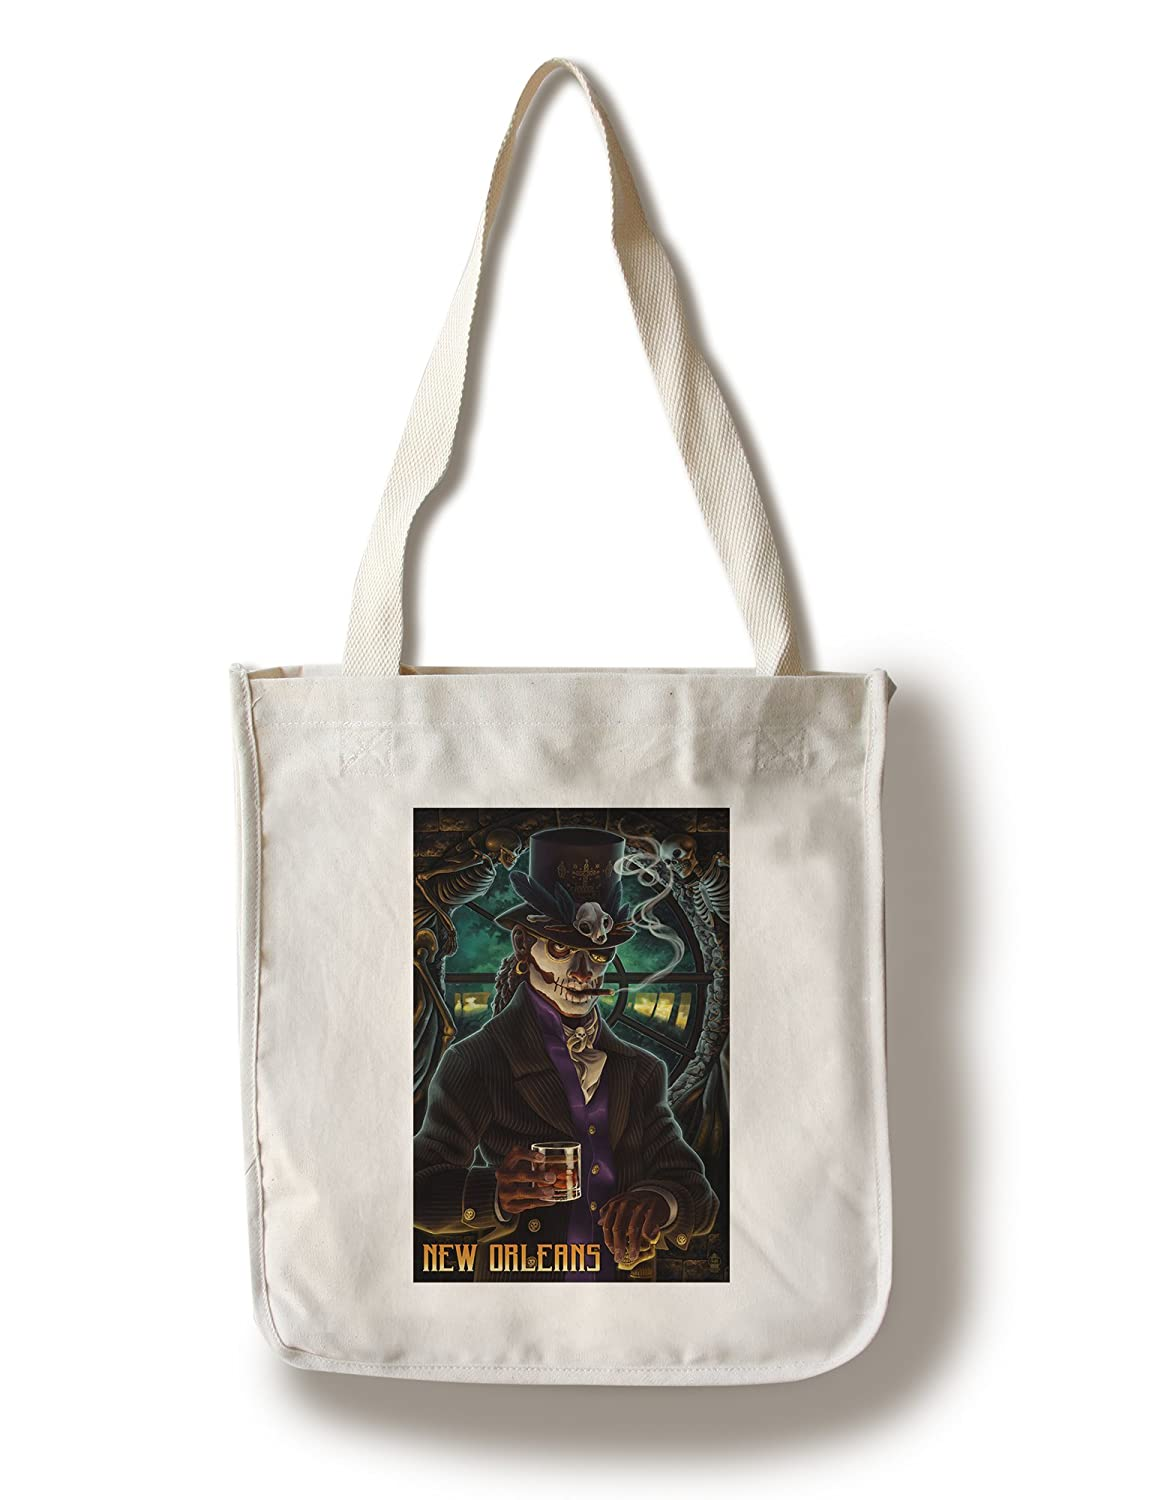 Baron Samedi Voodoo – ニューオーリンズ、ルイジアナ州 Canvas Tote Bag LANT-44947-TT B018819UGM Canvas Tote Bag